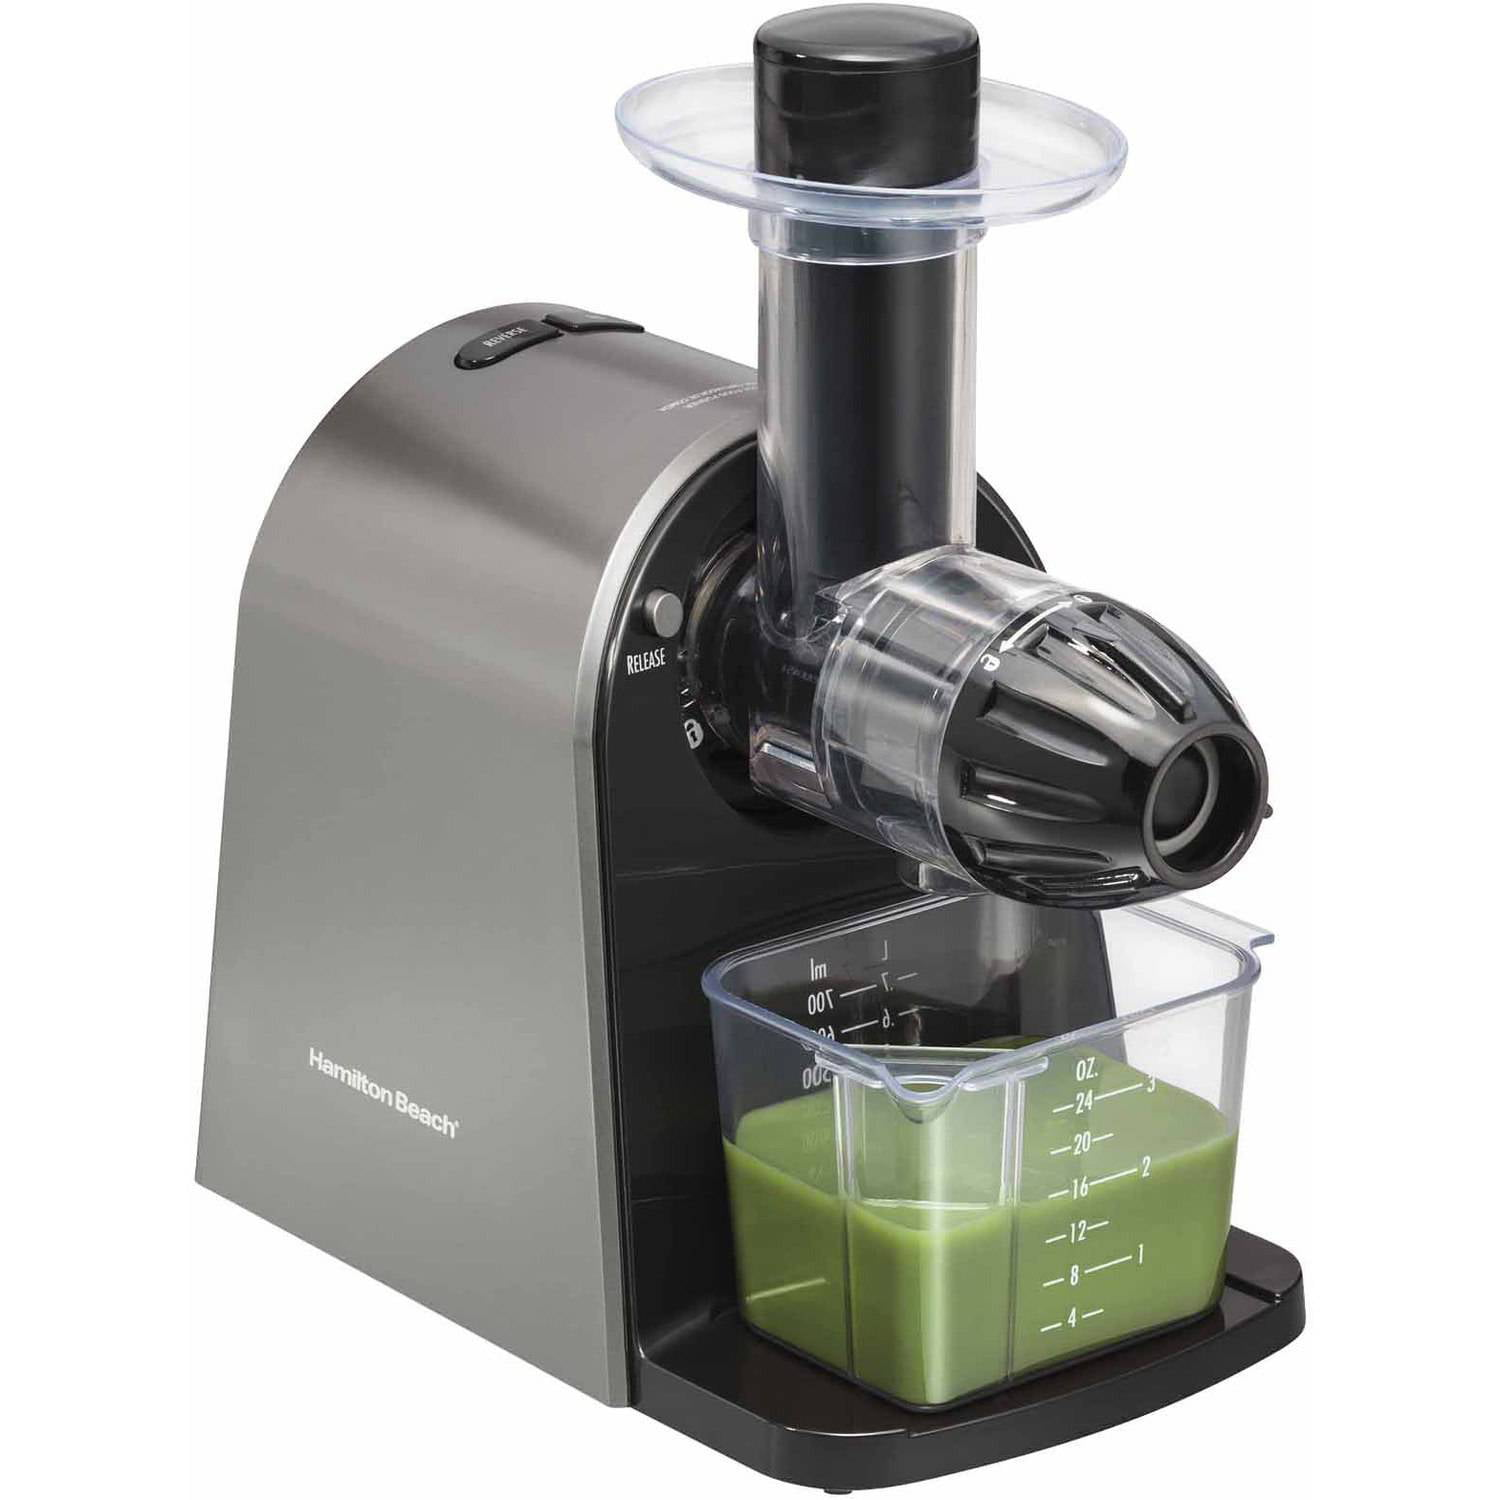 Tristar Slow Cold Press Juicer Review : Cold Press Juicer Machine - Masticating Juicer Slow Juice Extractor Maker Electric Juicing ...